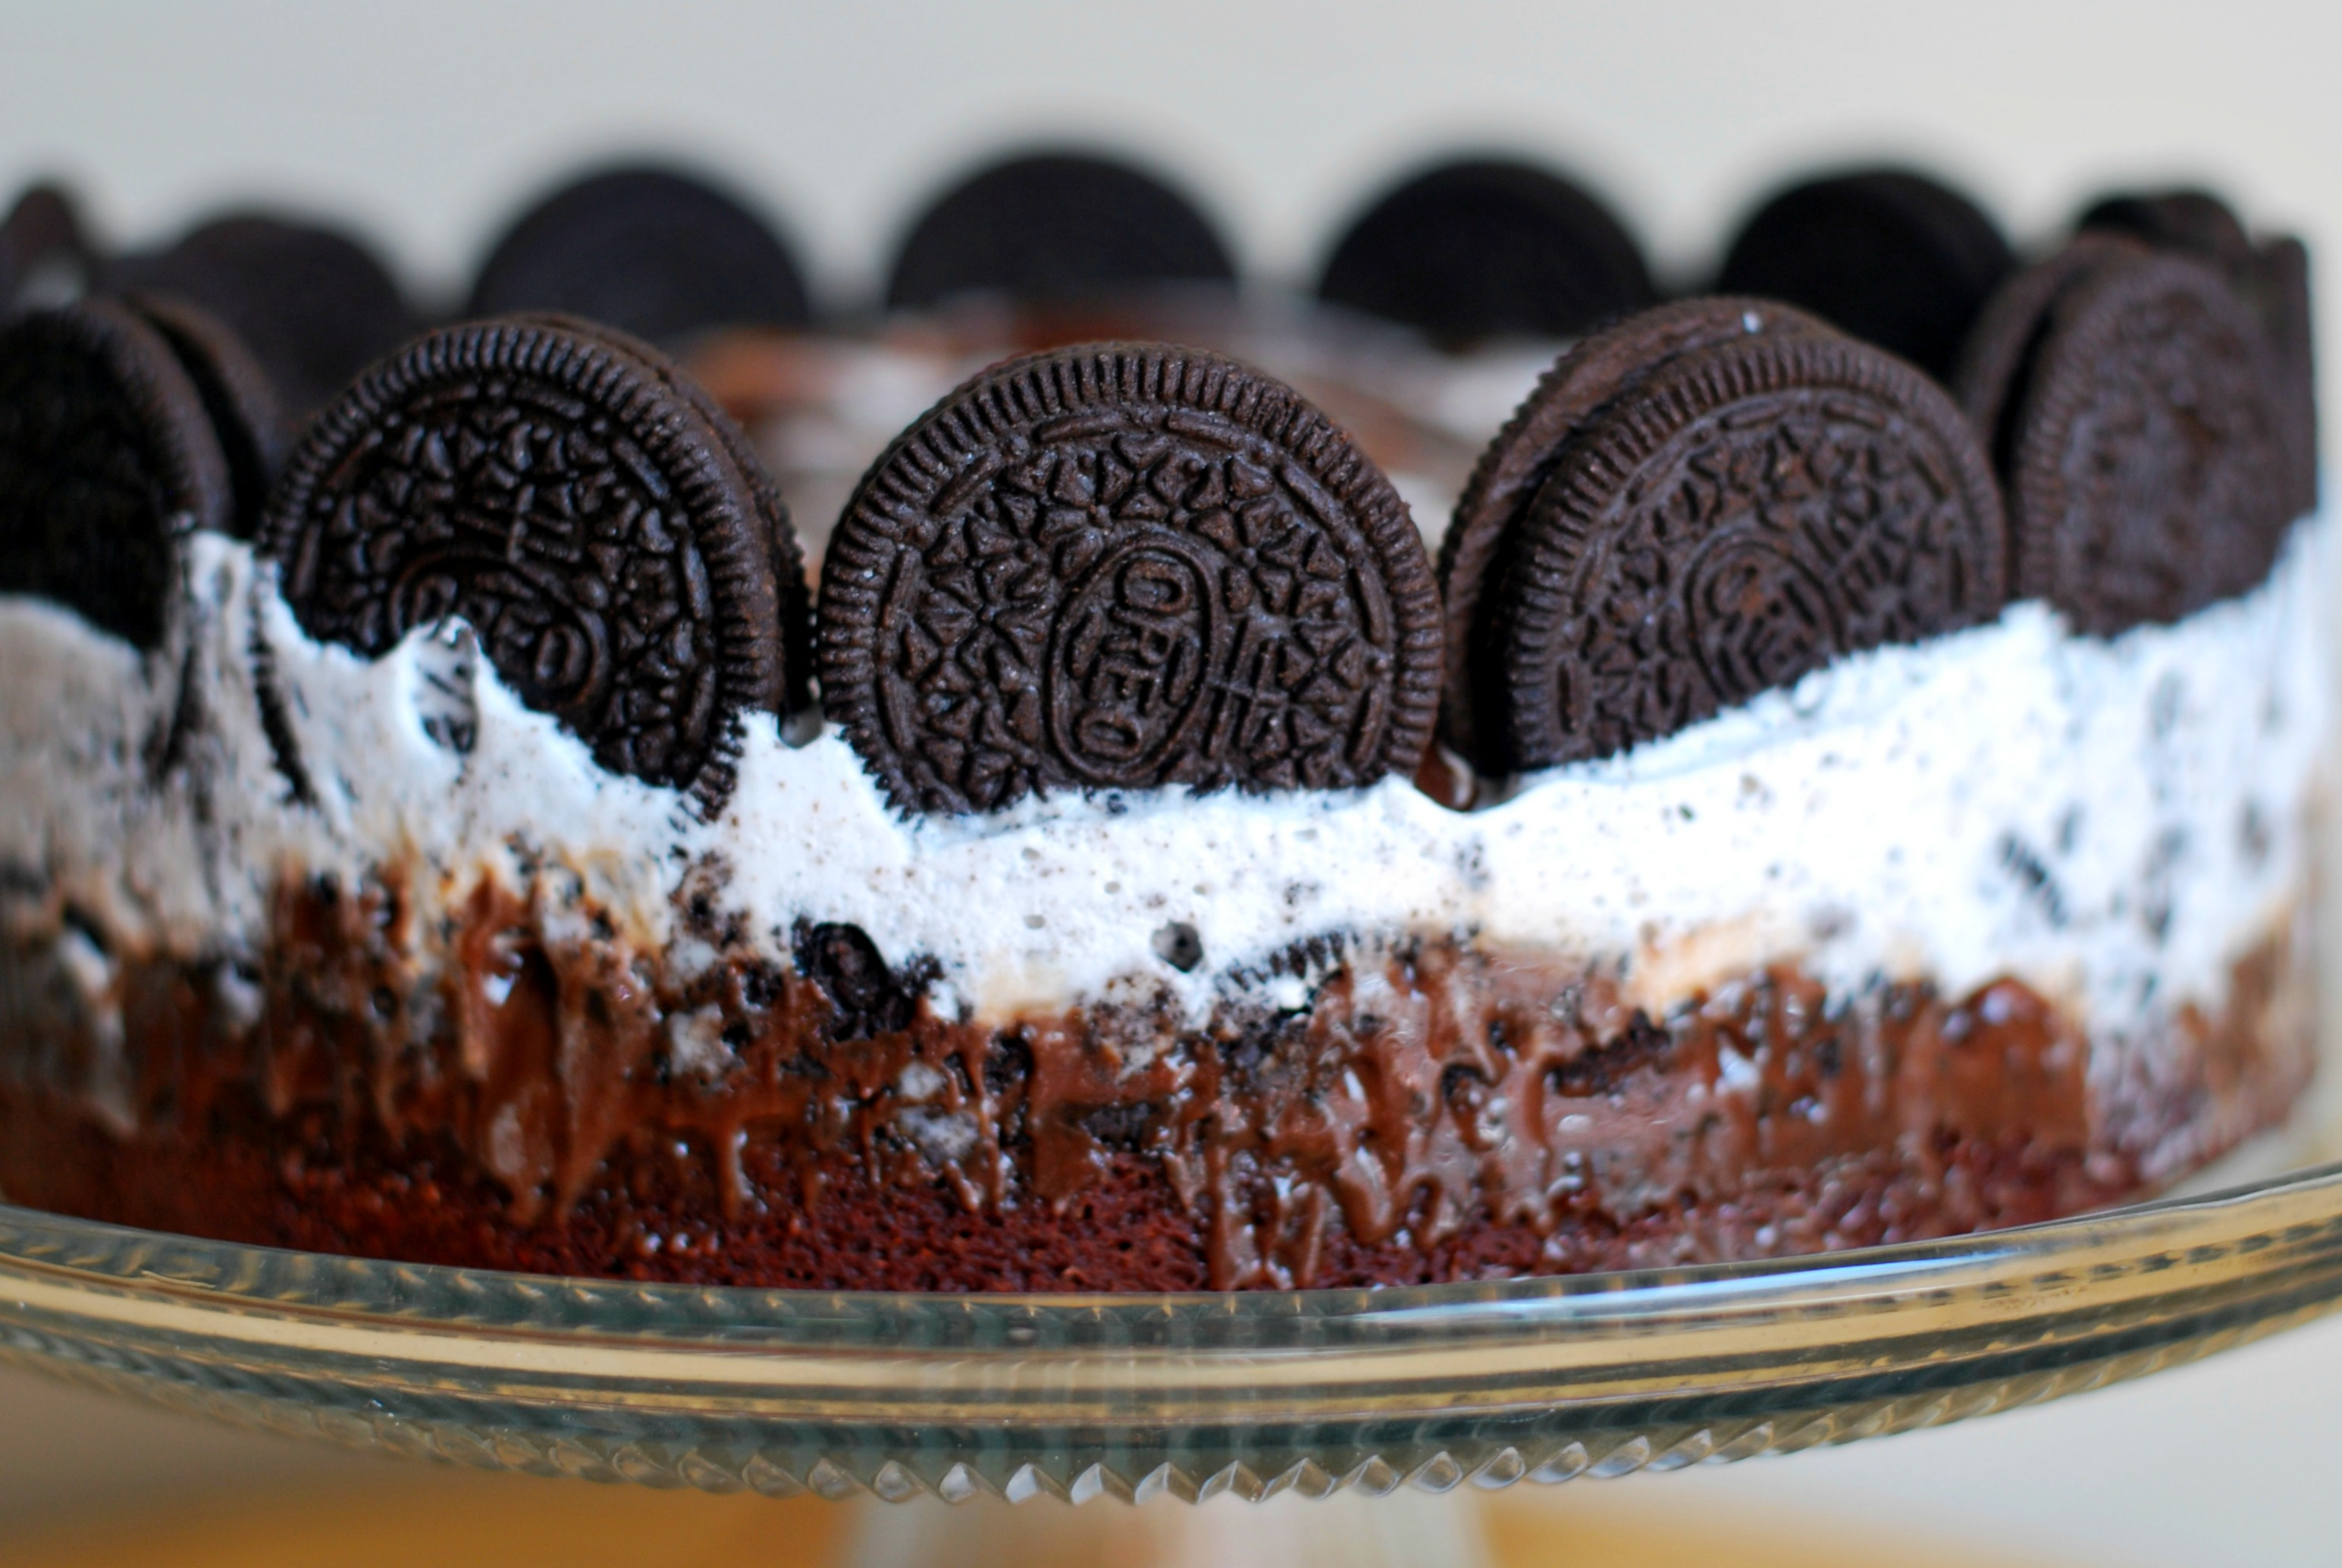 Cookies & Cream Ice Cream Cake